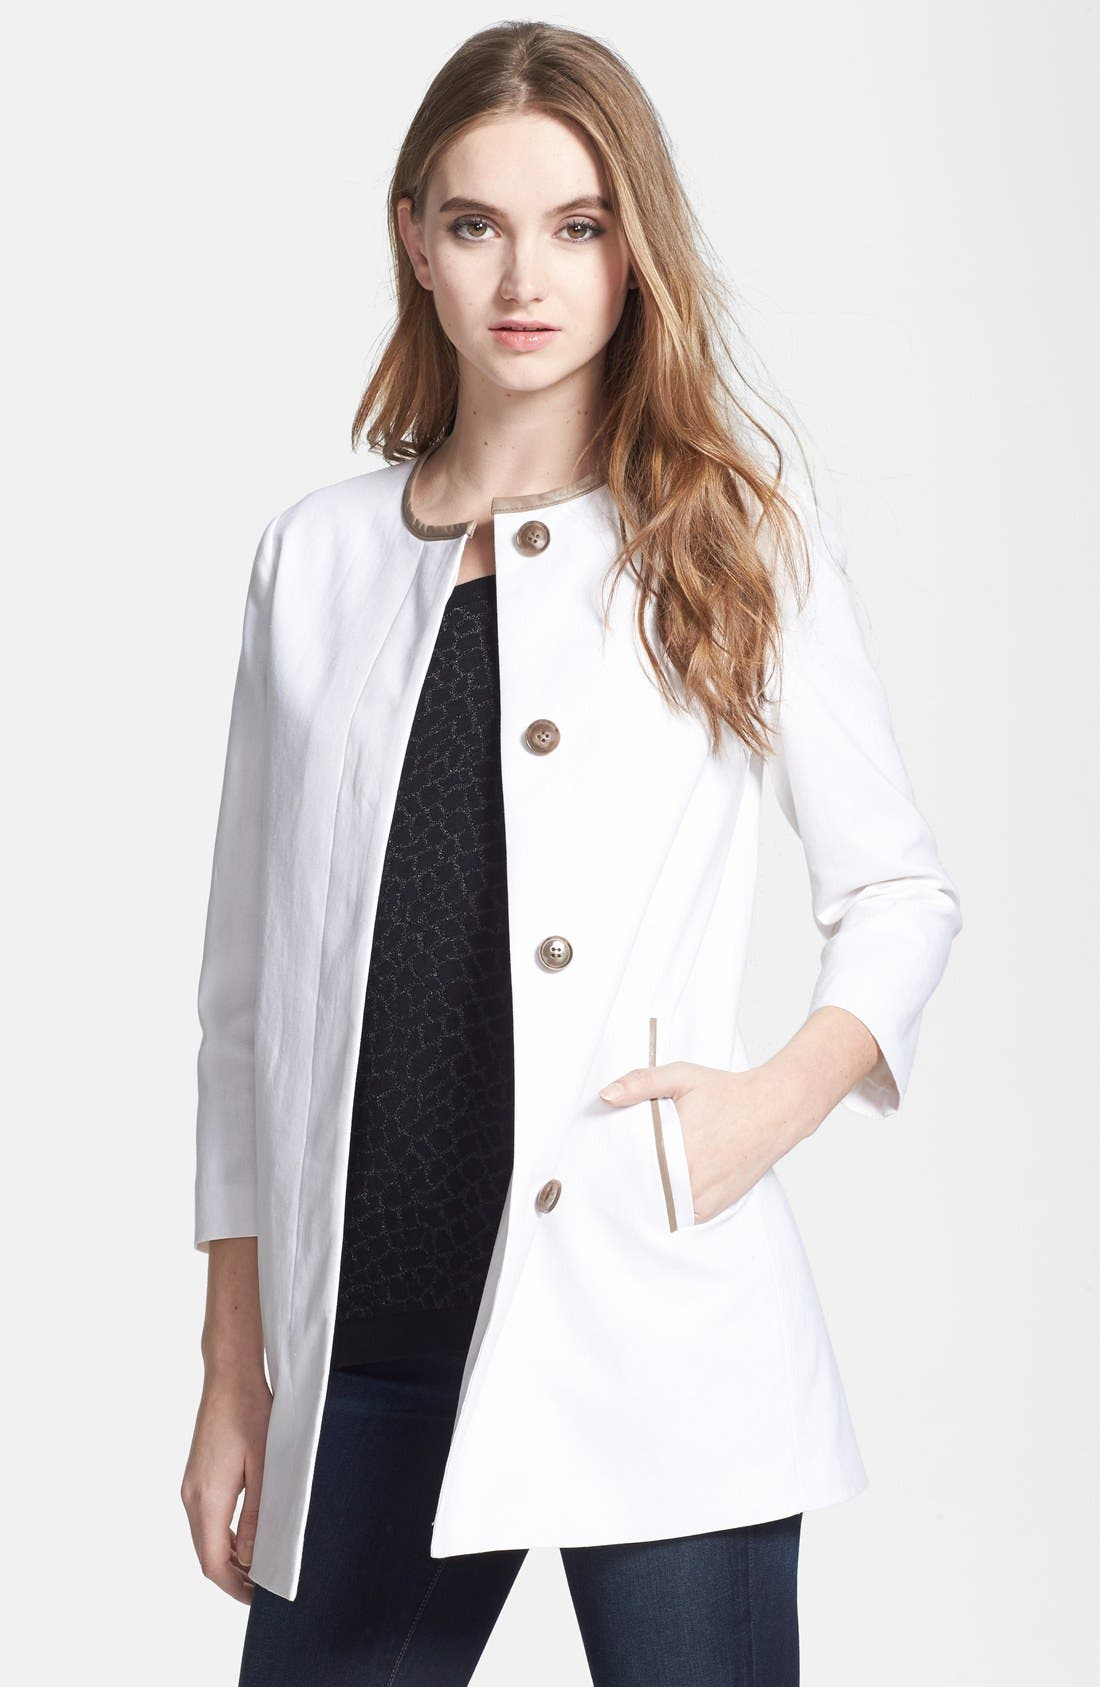 Alternate Image 1 Selected - Soia & Kyo Leather Trim Collarless Linen & Cotton Jacket